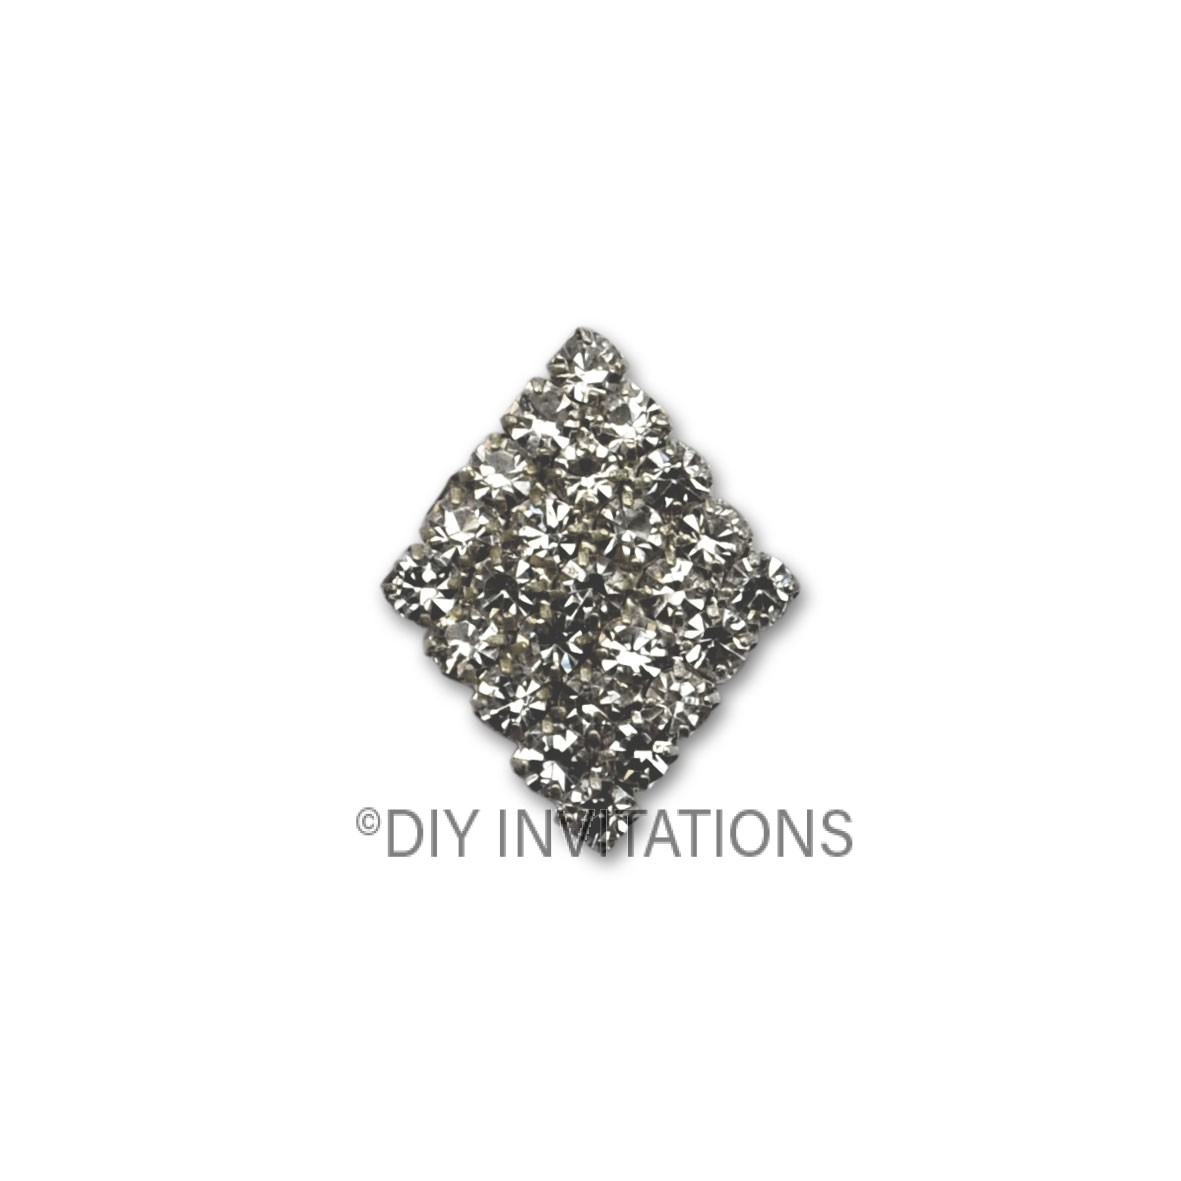 Self Adhesive Diamond Cluster